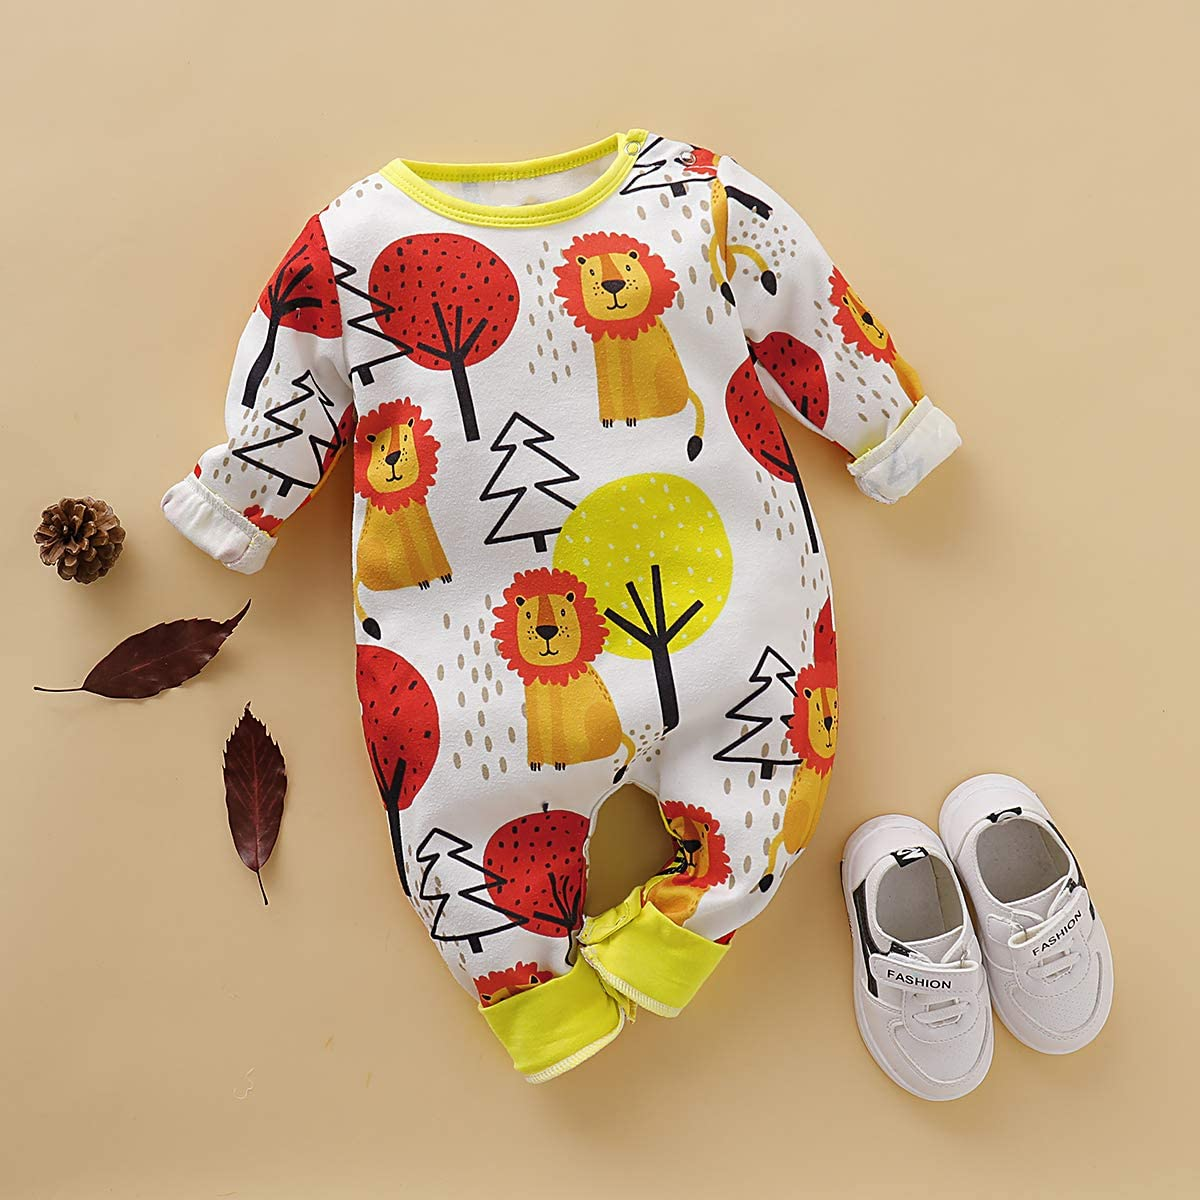 Borlai Newborn Fashion Clothes Cartoon Lion Tree Print Outfit Long Sleeve Bodysuit Onesies 0-18M